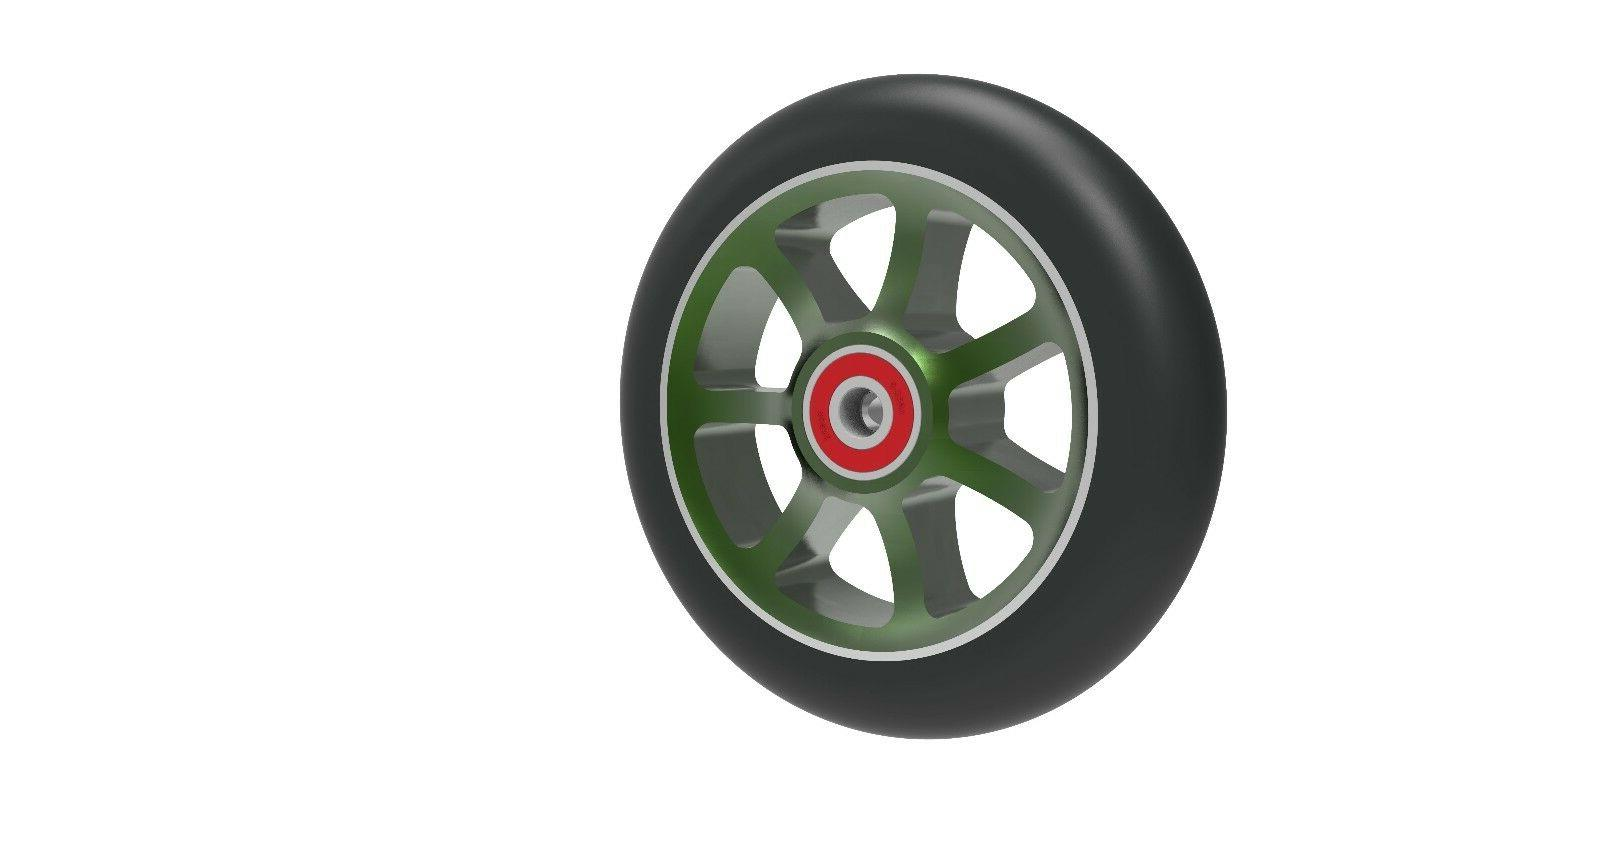 Revolution Spoke Aluminum Pro Scooter Replacement Wheels Pair